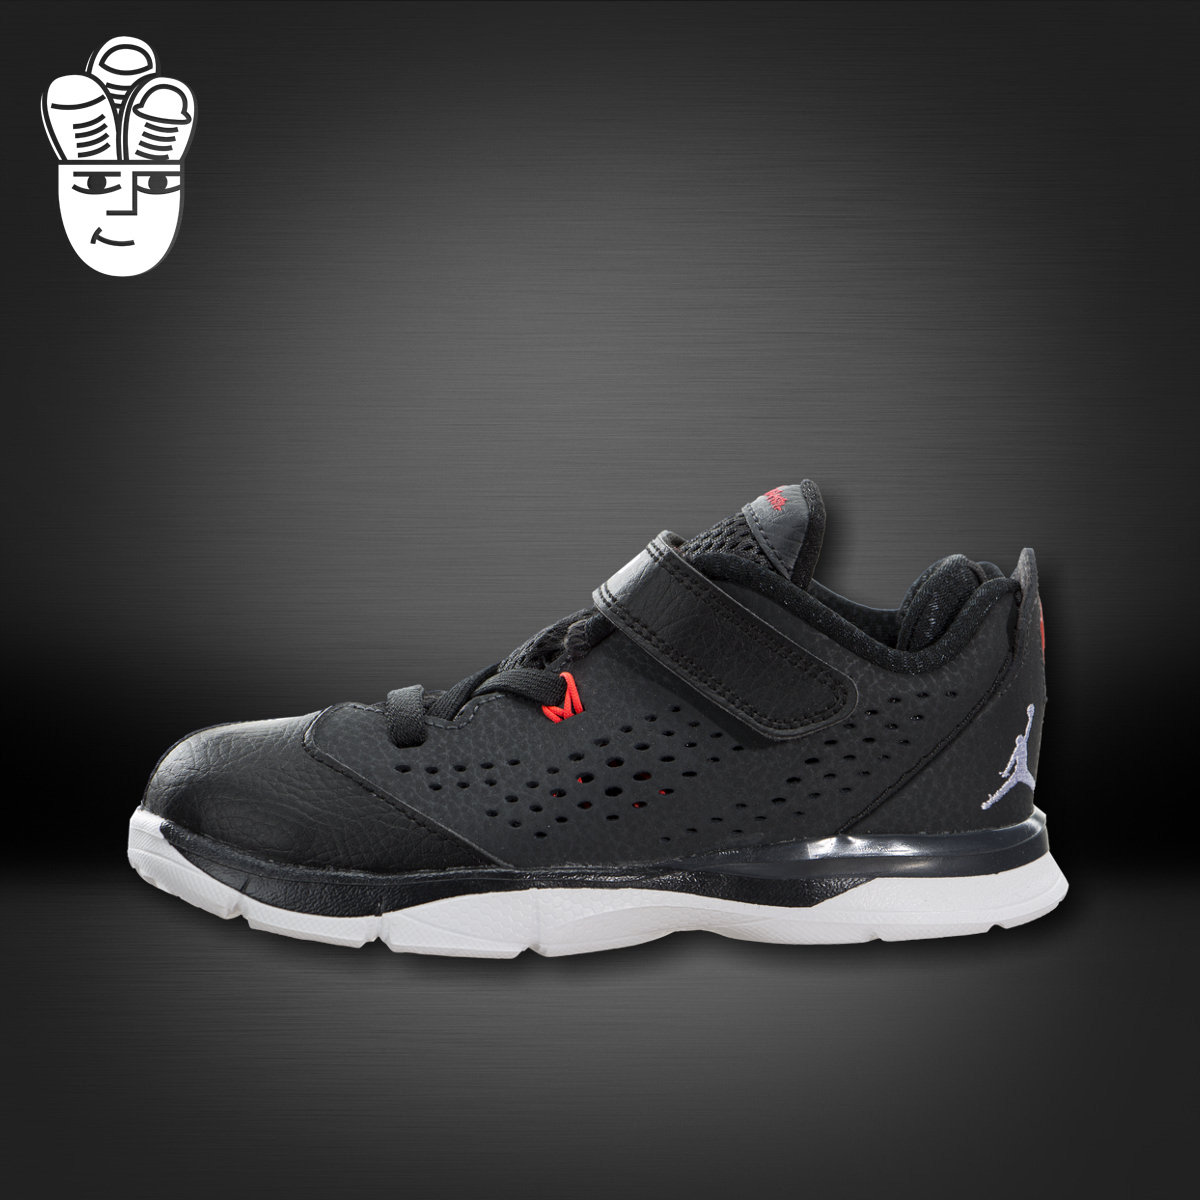 3ce57ba8d68a40 Get Quotations · Influx of children and young children s shoes aj jordan  cp3 vii basketball shoes sports shoes 7